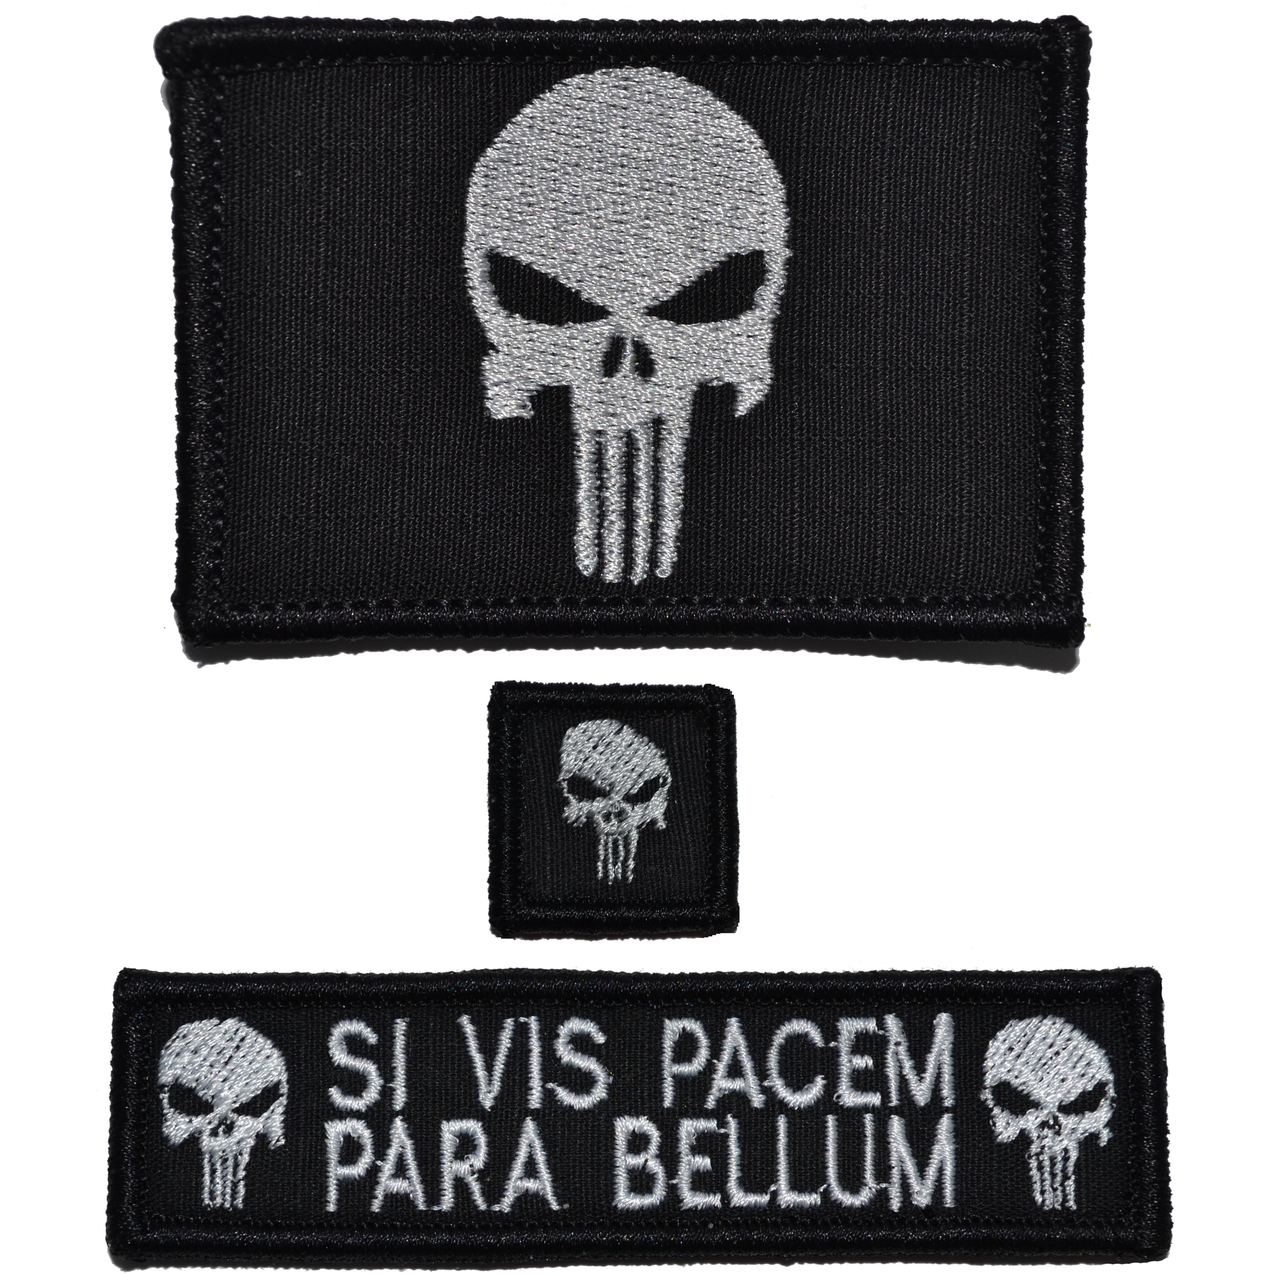 Patch Set: Punisher Skull 2x3, Si Vis Pacem 1x3.75, Punisher Skull 1x1